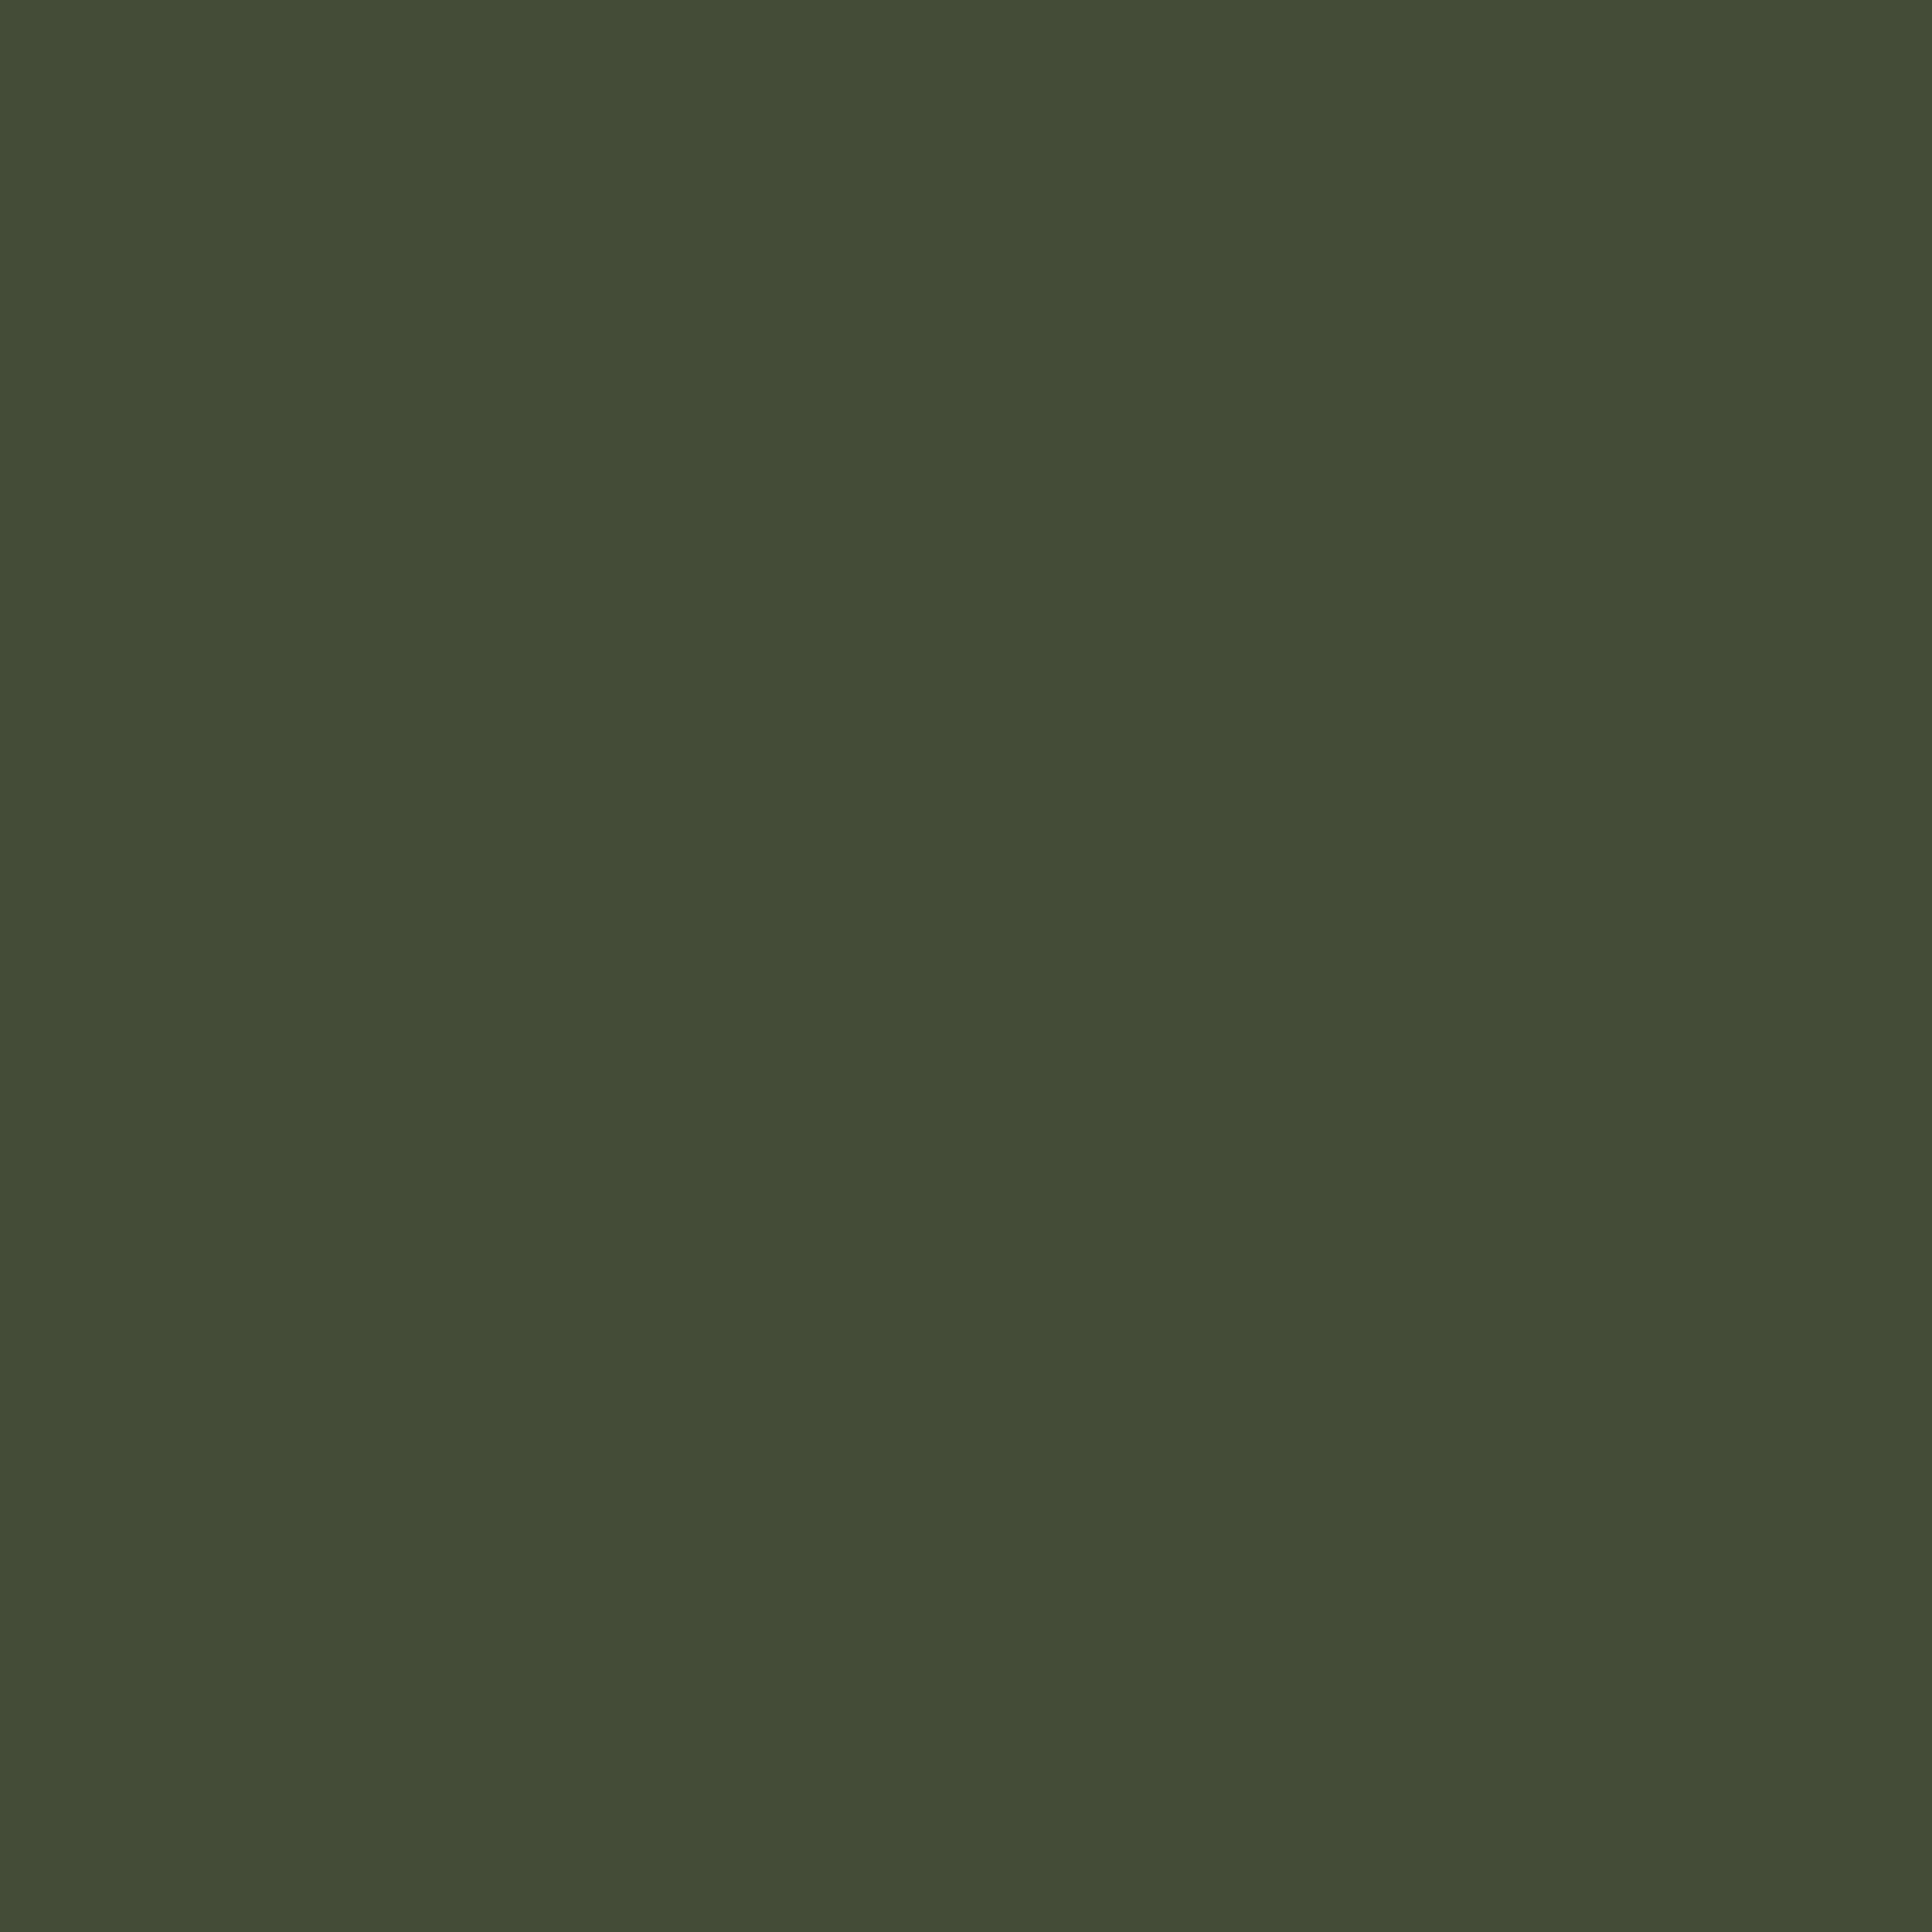 2732x2732 Rifle Green Solid Color Background